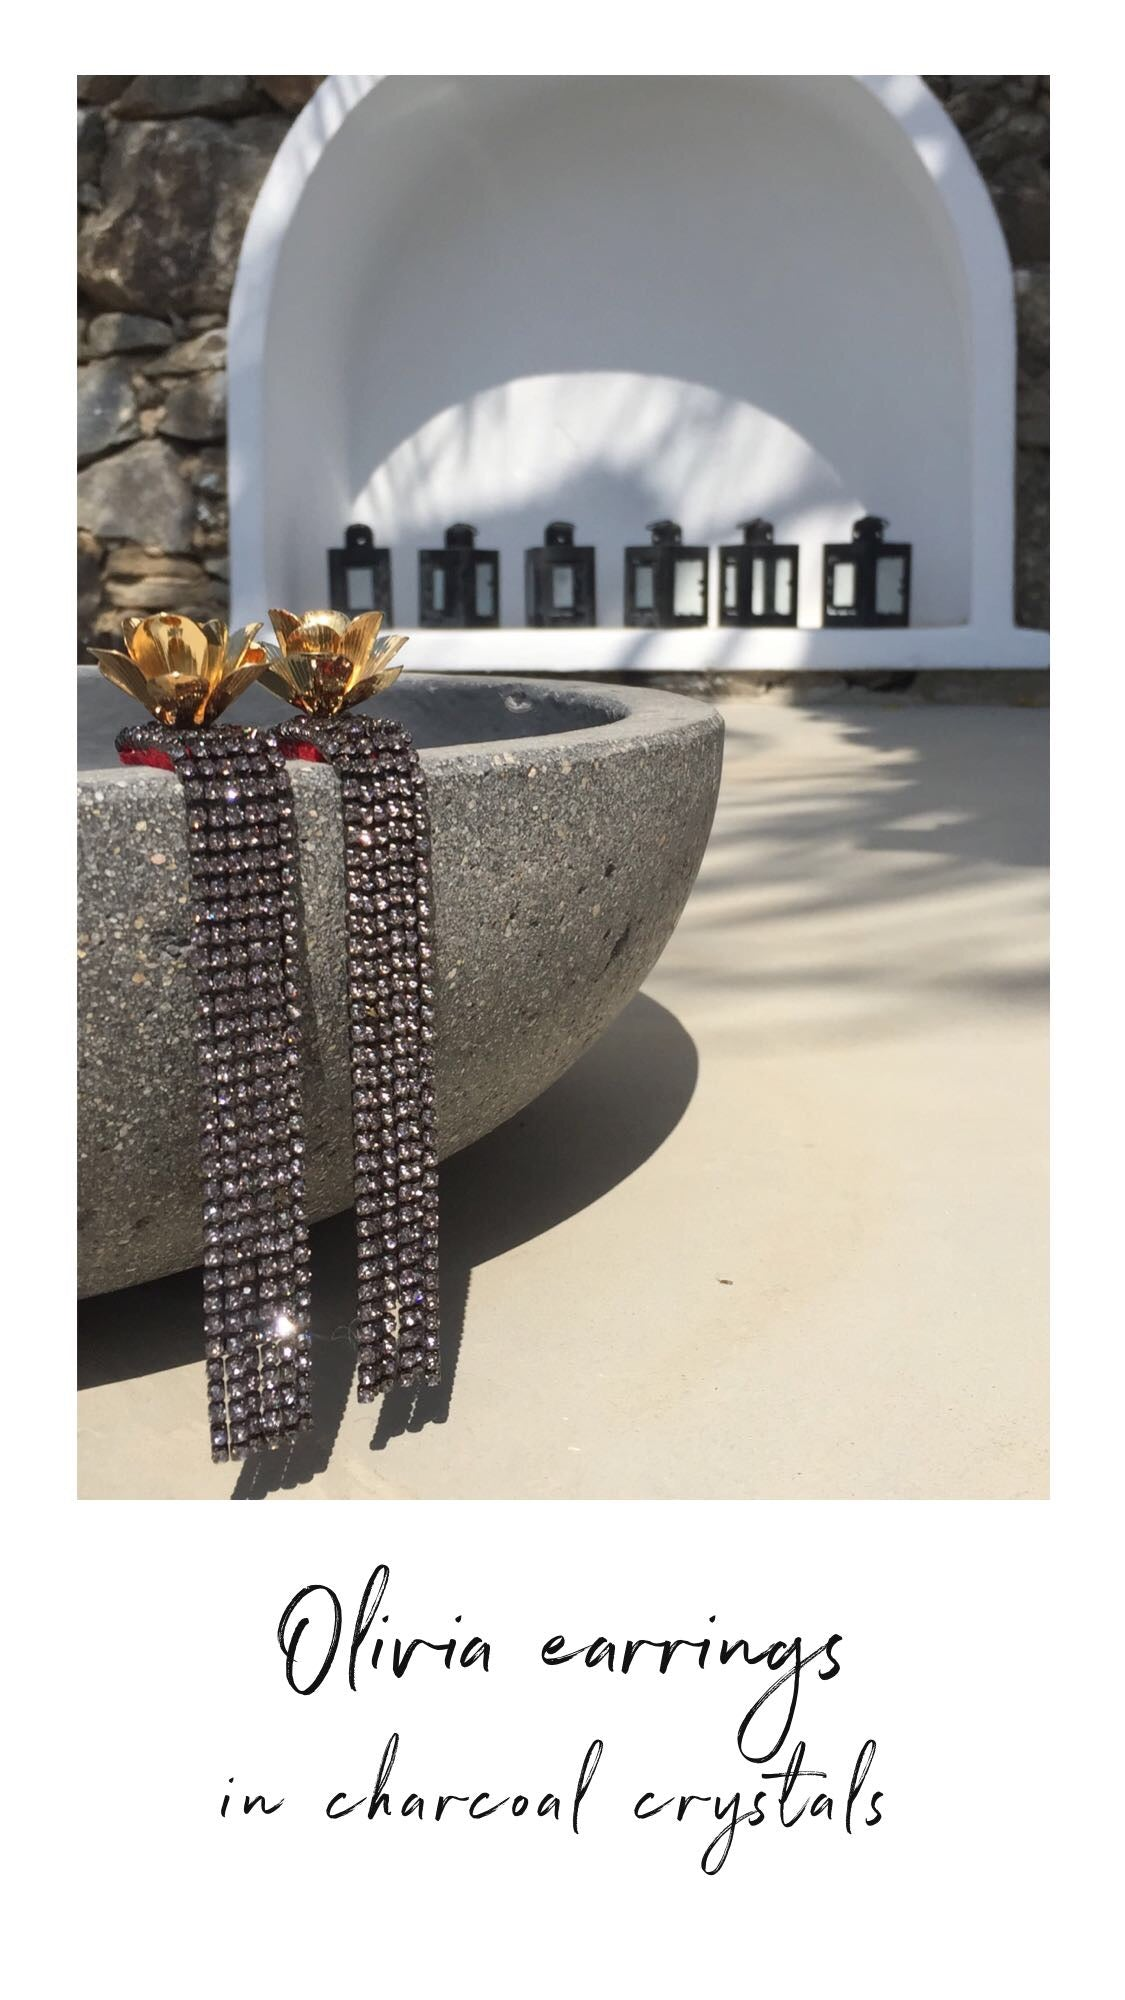 Olivia statement earrings with charcoal crystals